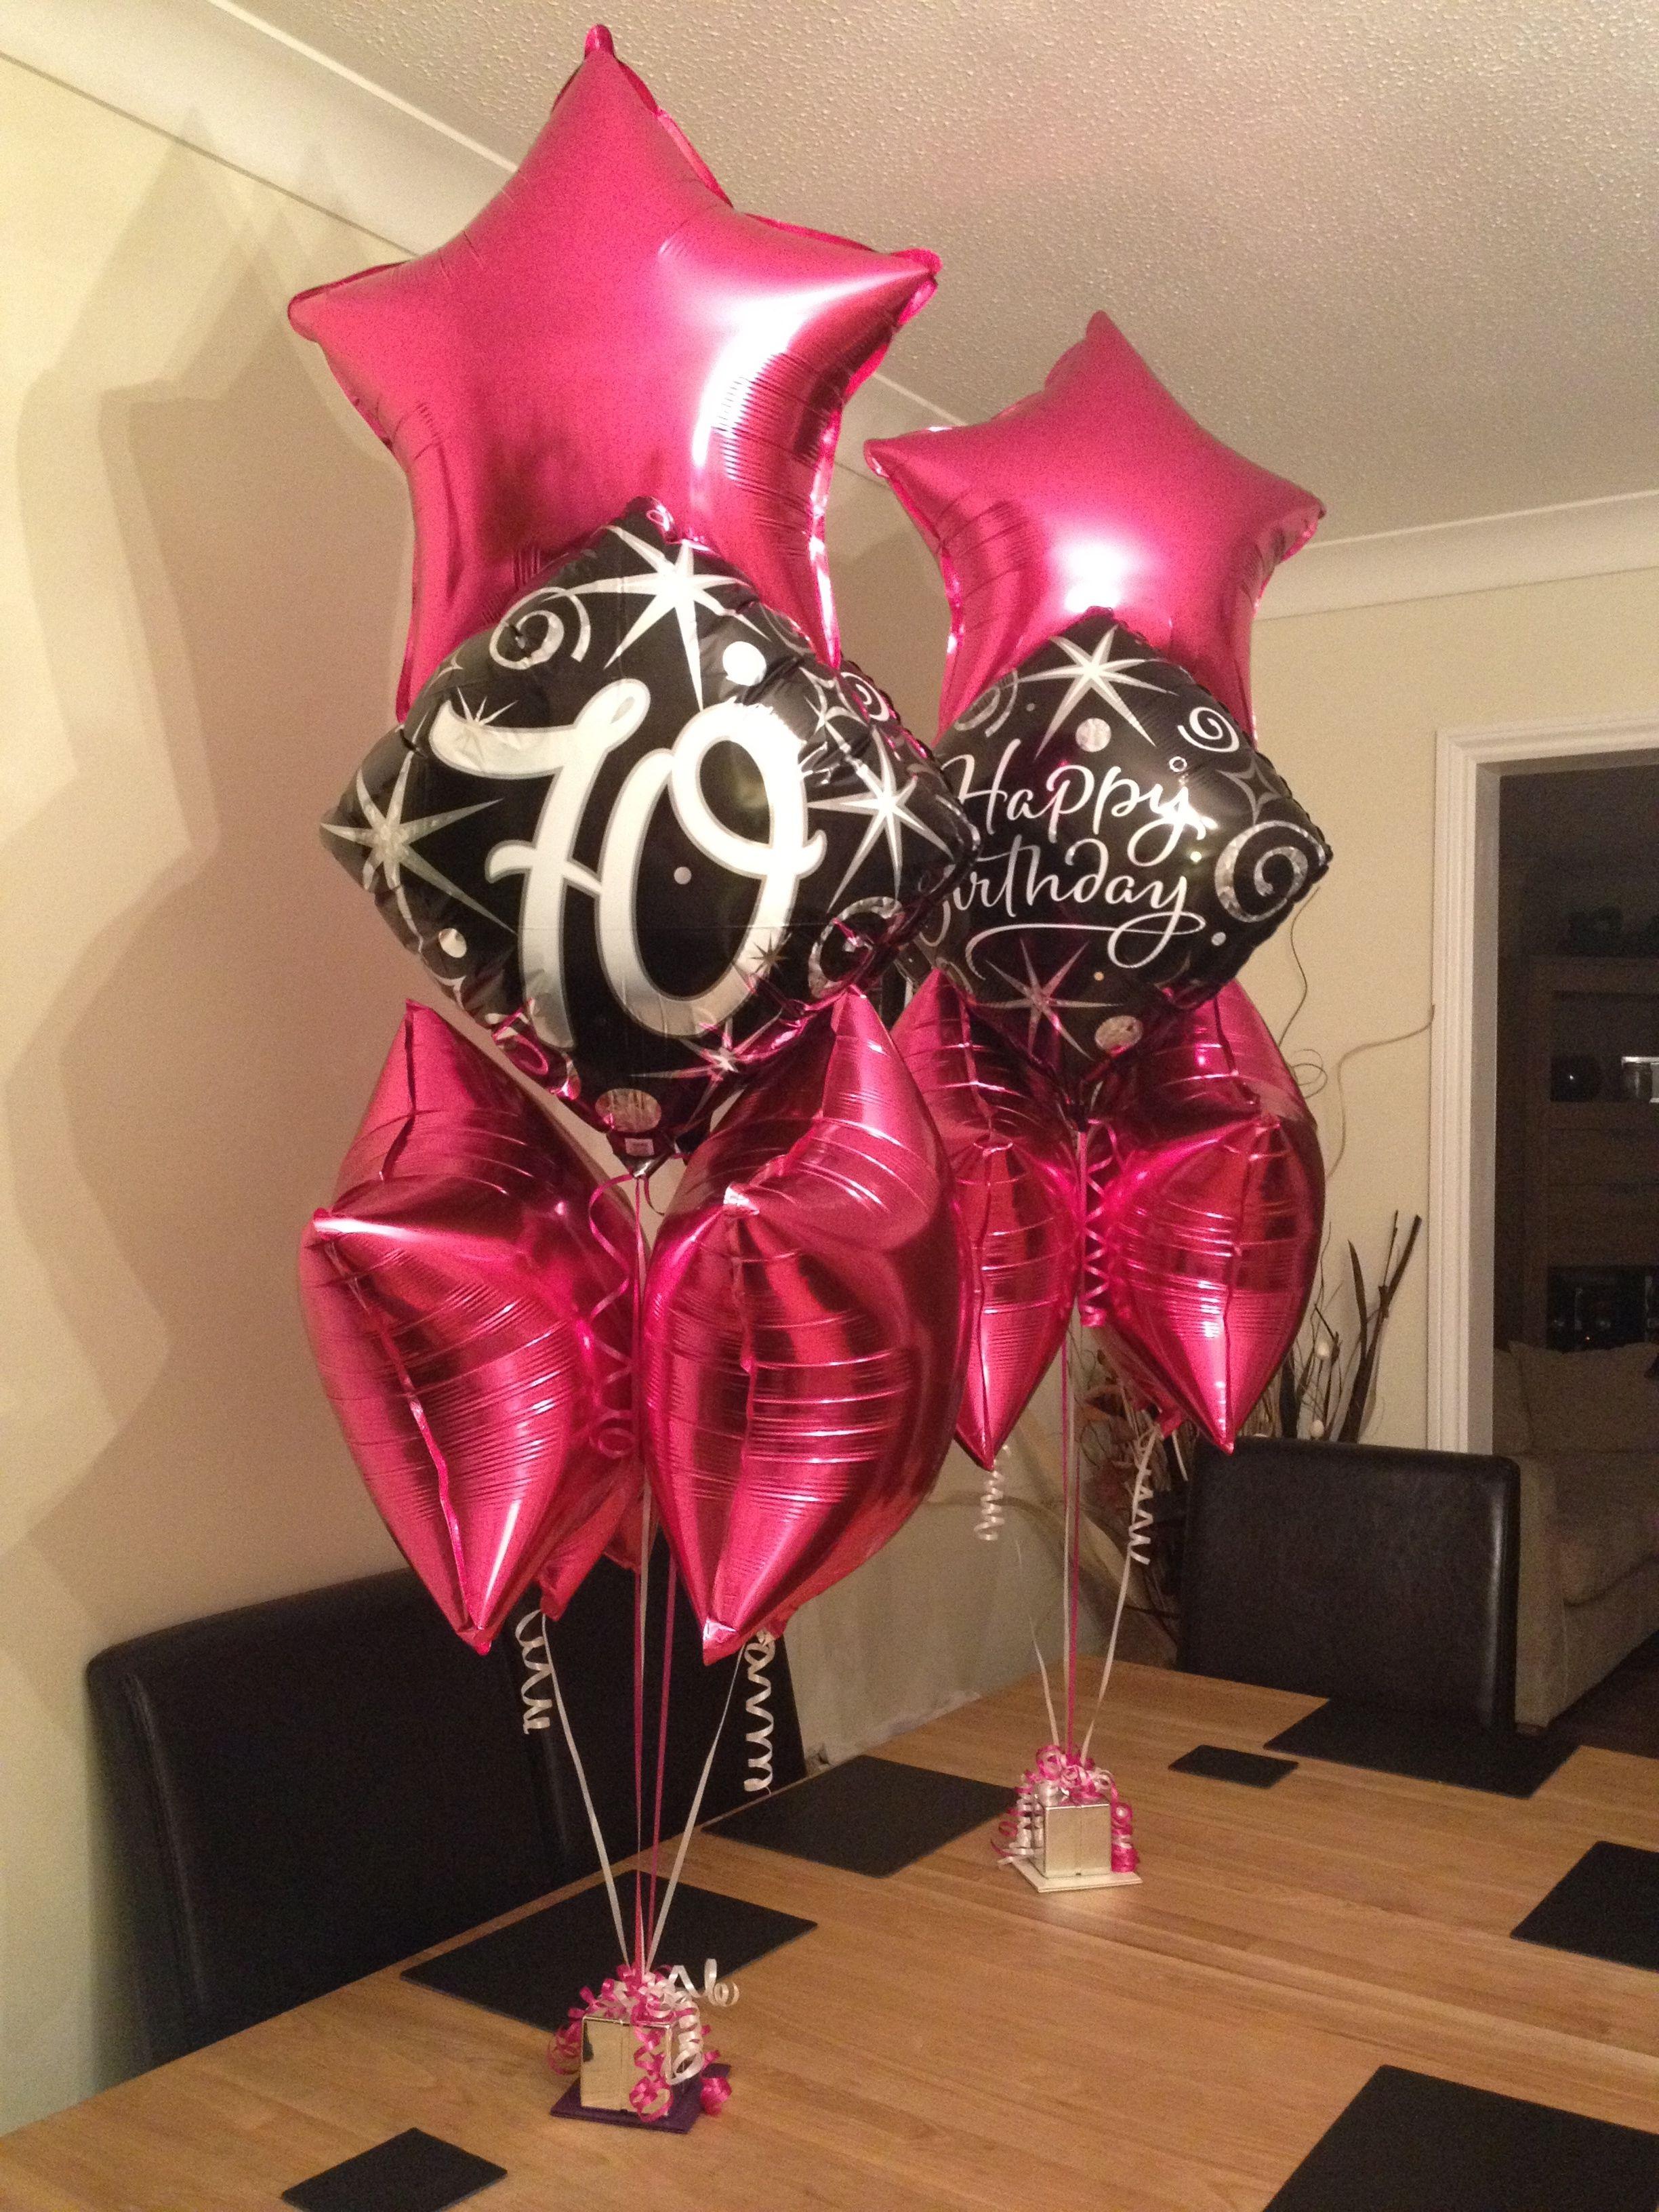 Happy birthday balloon bouquets 70th magenta stars and black silver